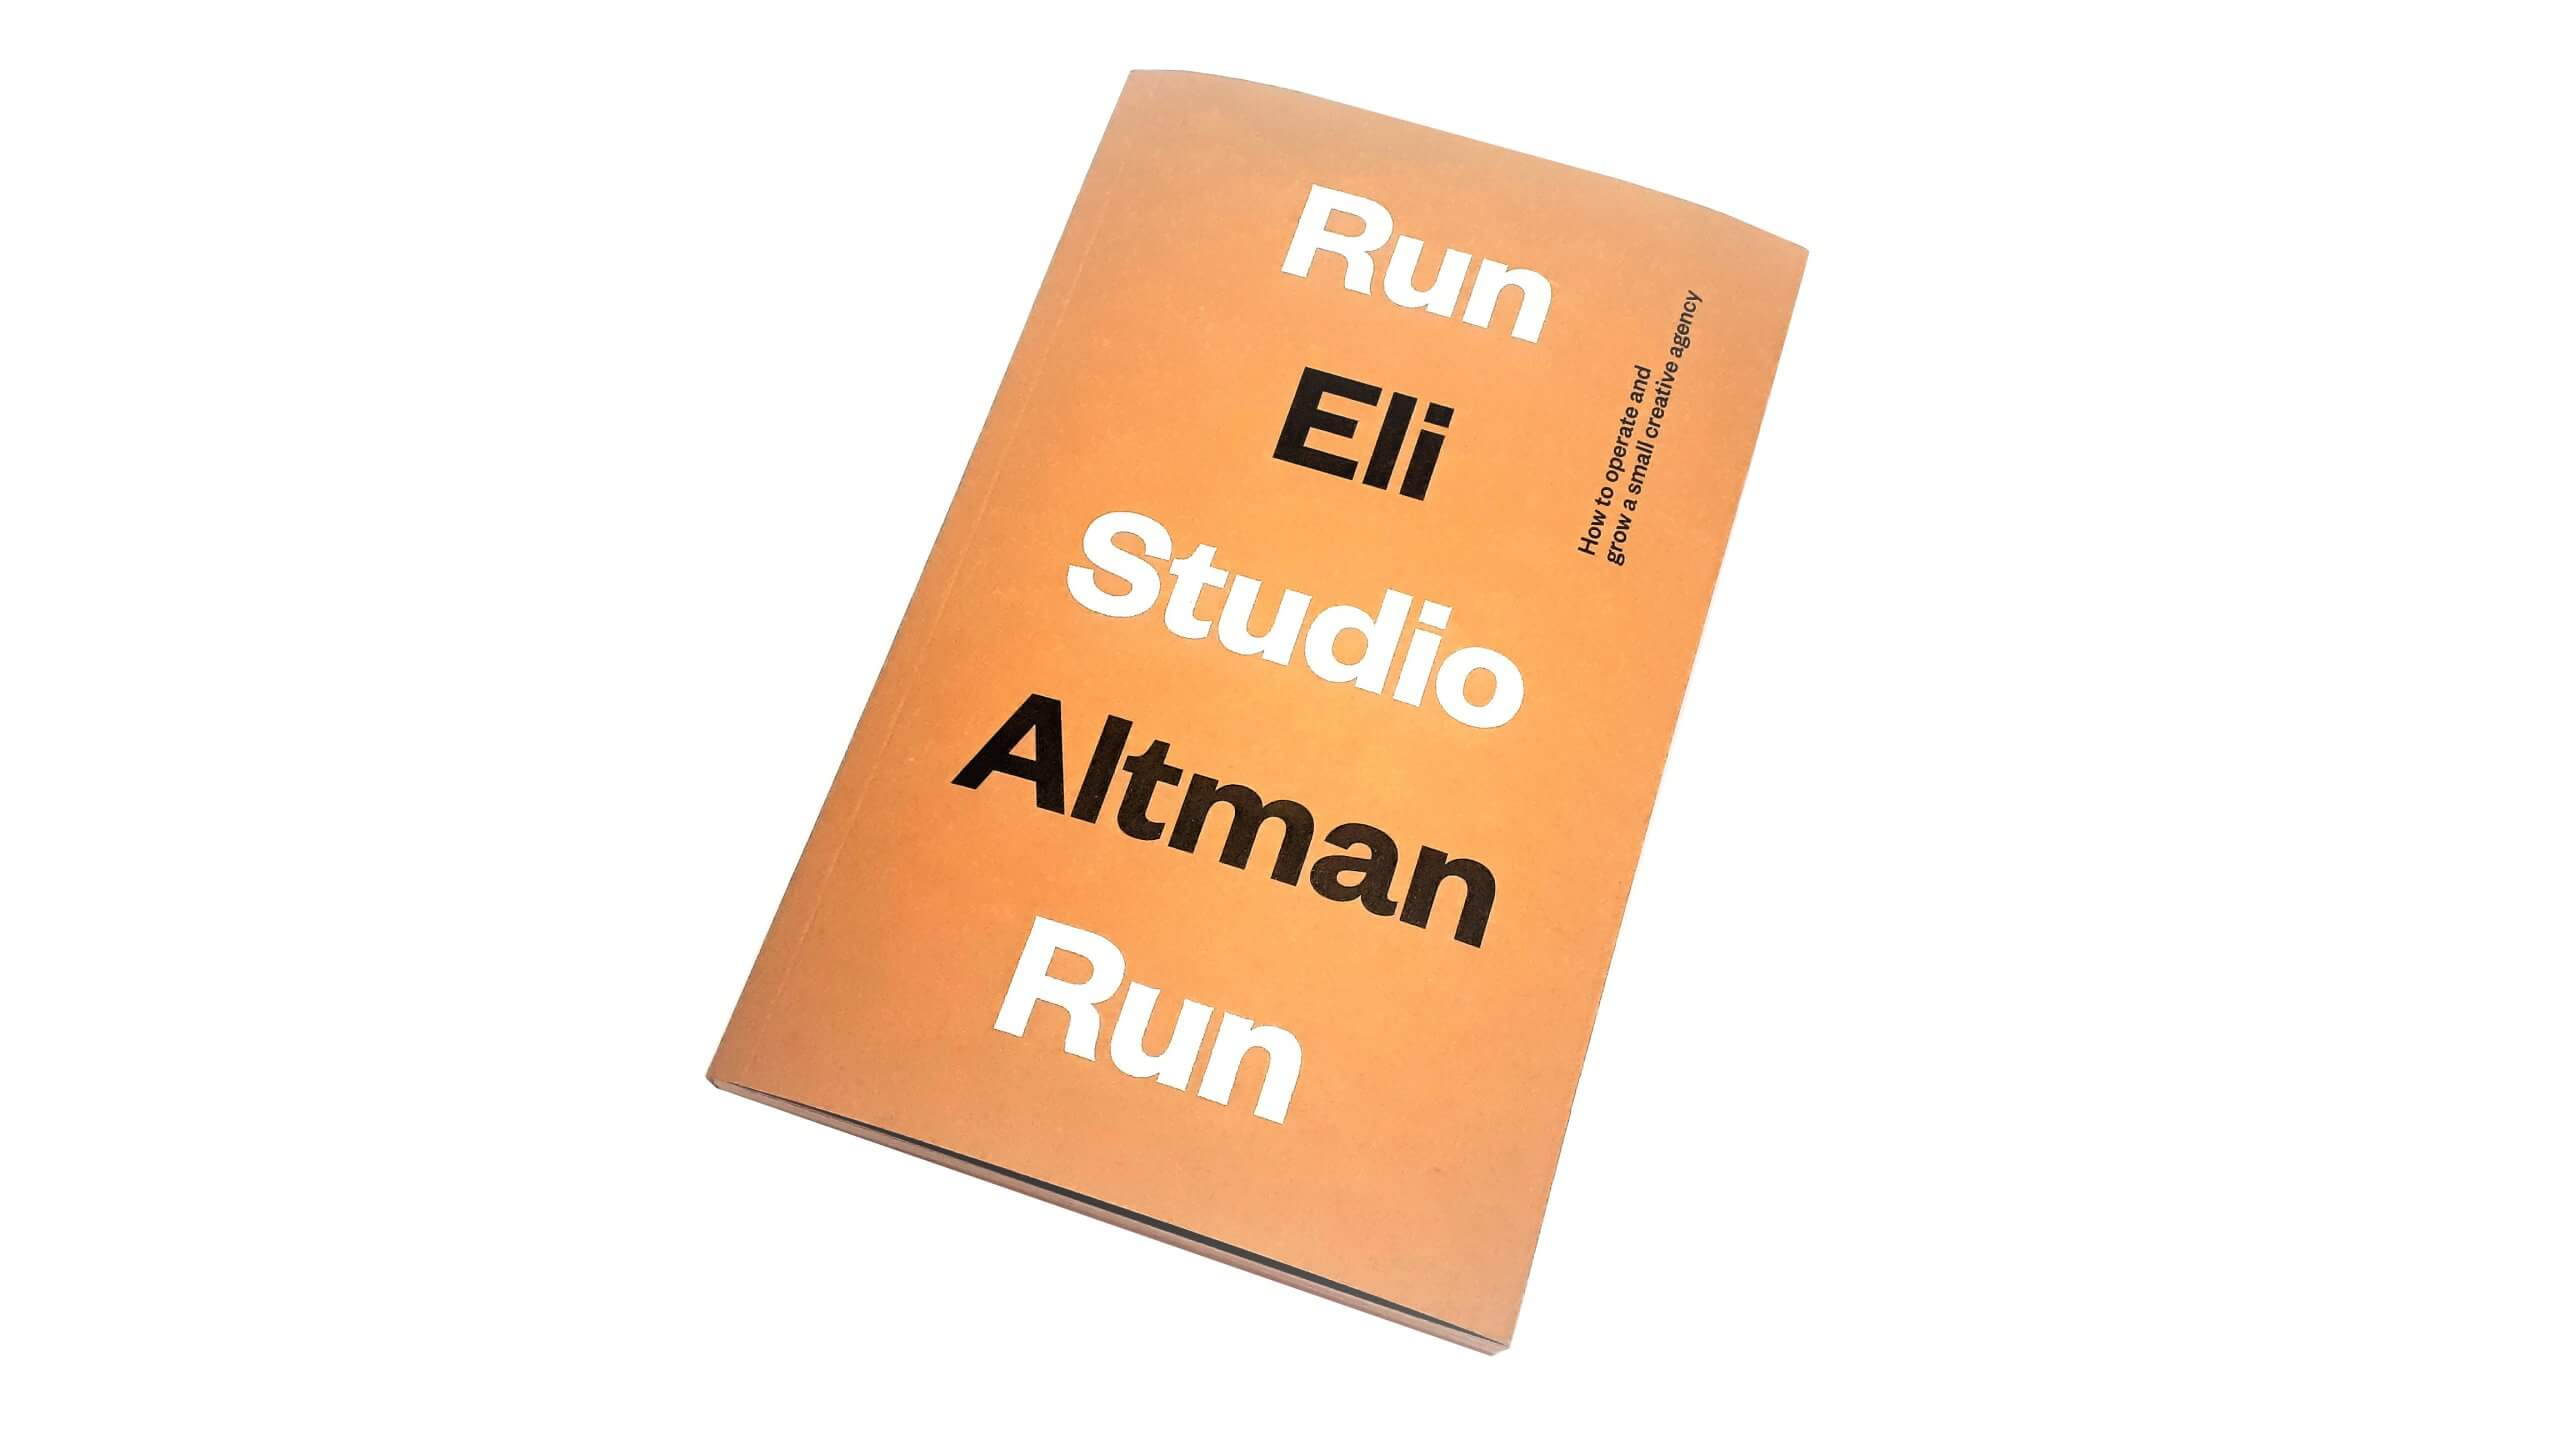 Run Studio Run by Eli Altman_2